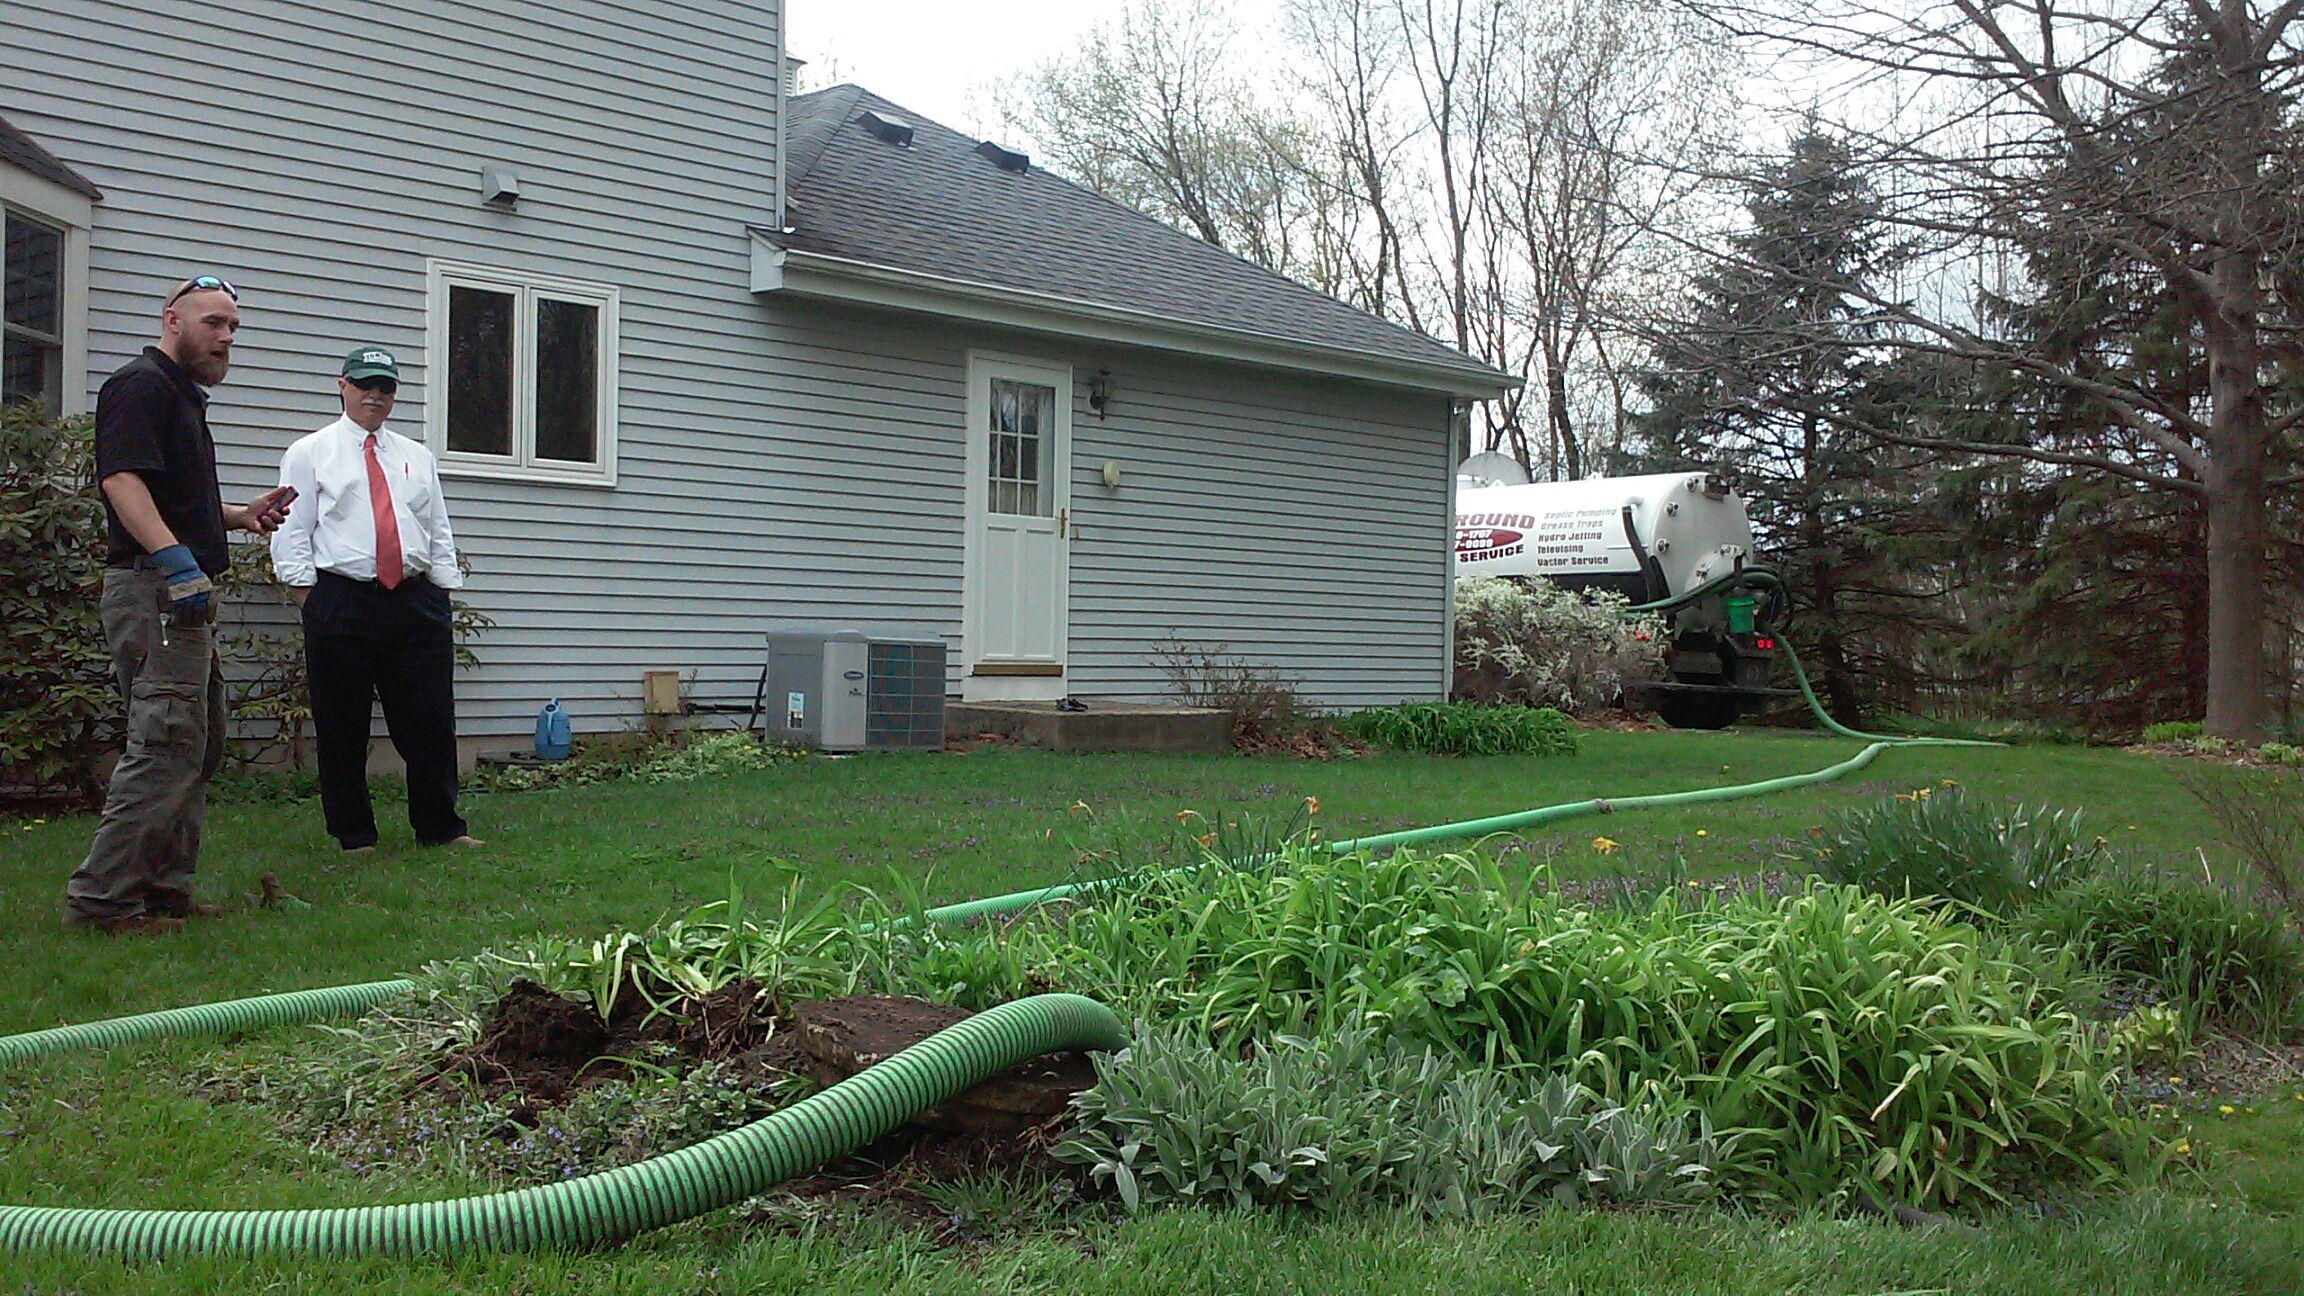 Saint Charles, IL - Pumping and cleaning septic tank. Visual inspection for customer